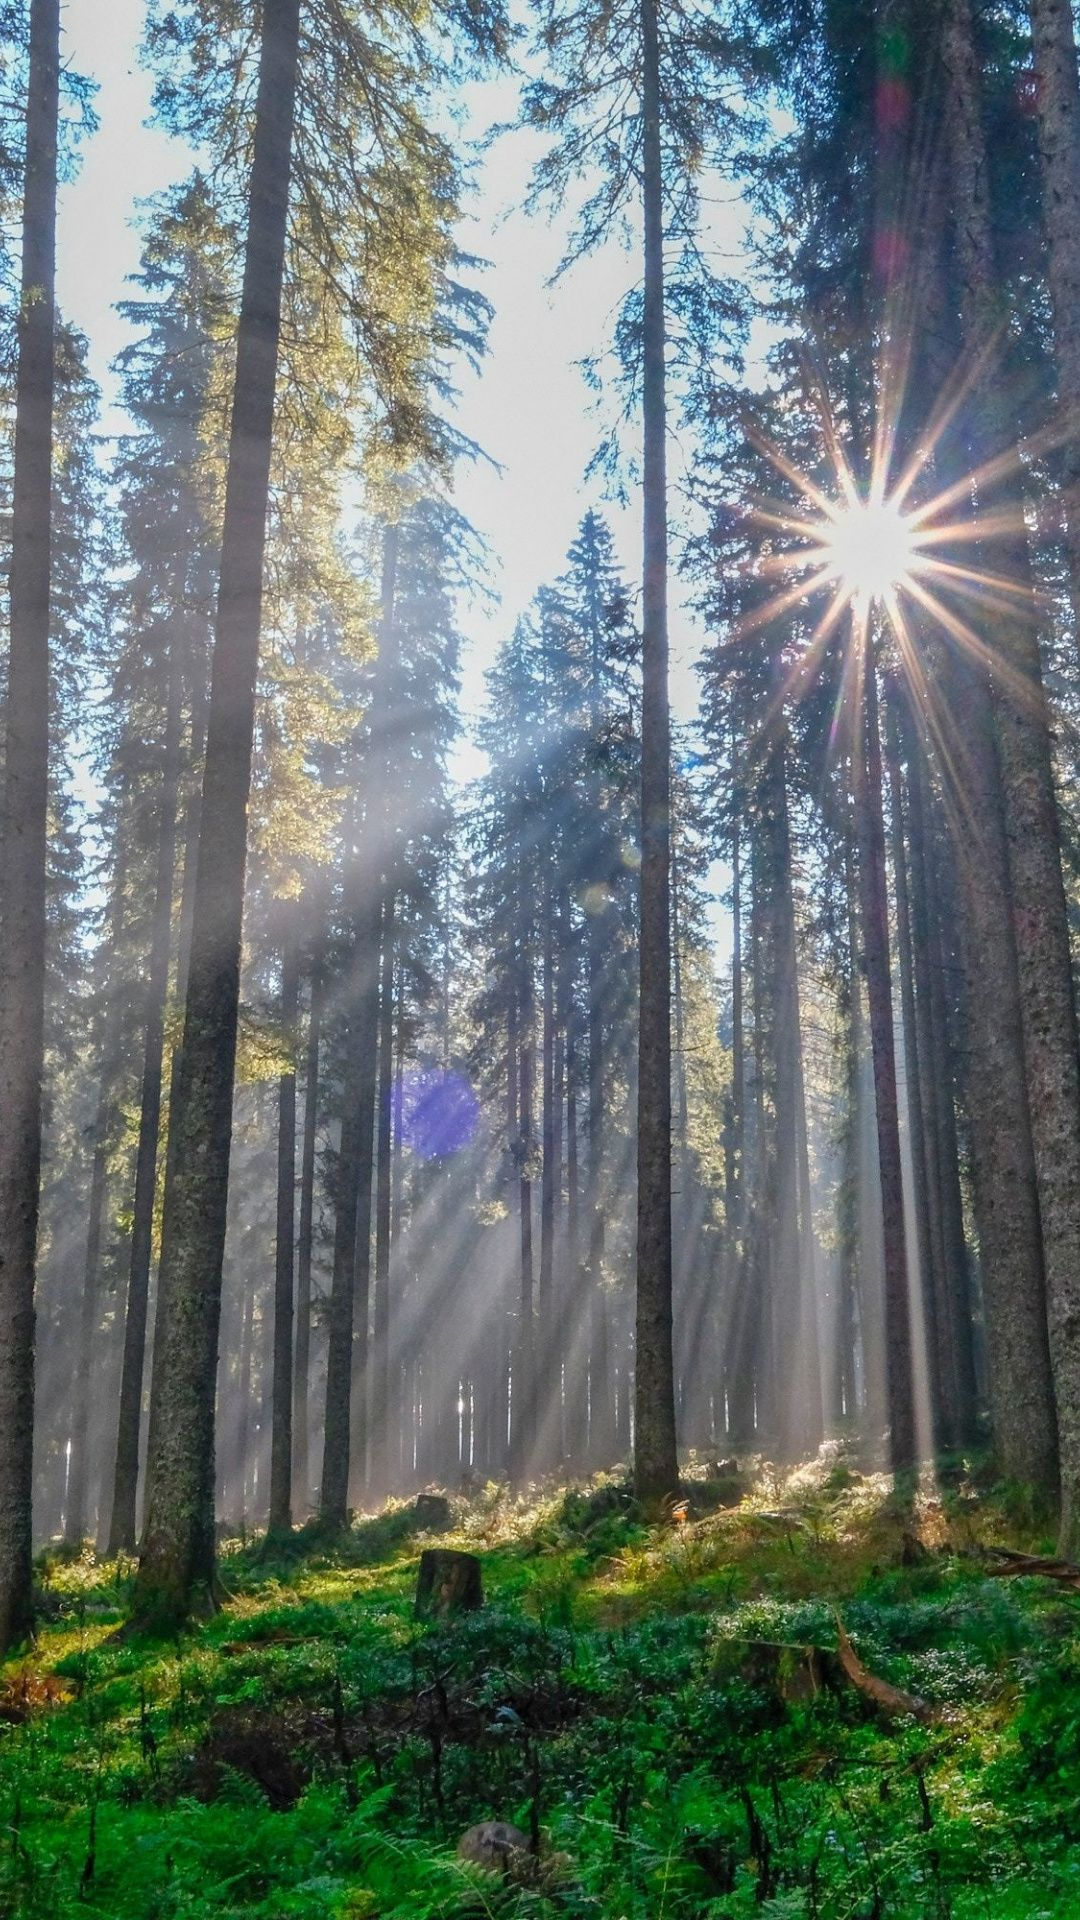 Sunbeams Though Trees Nature Morning 1080x1920 Wallpaper Beautiful Nature Landscape Pictures Nature